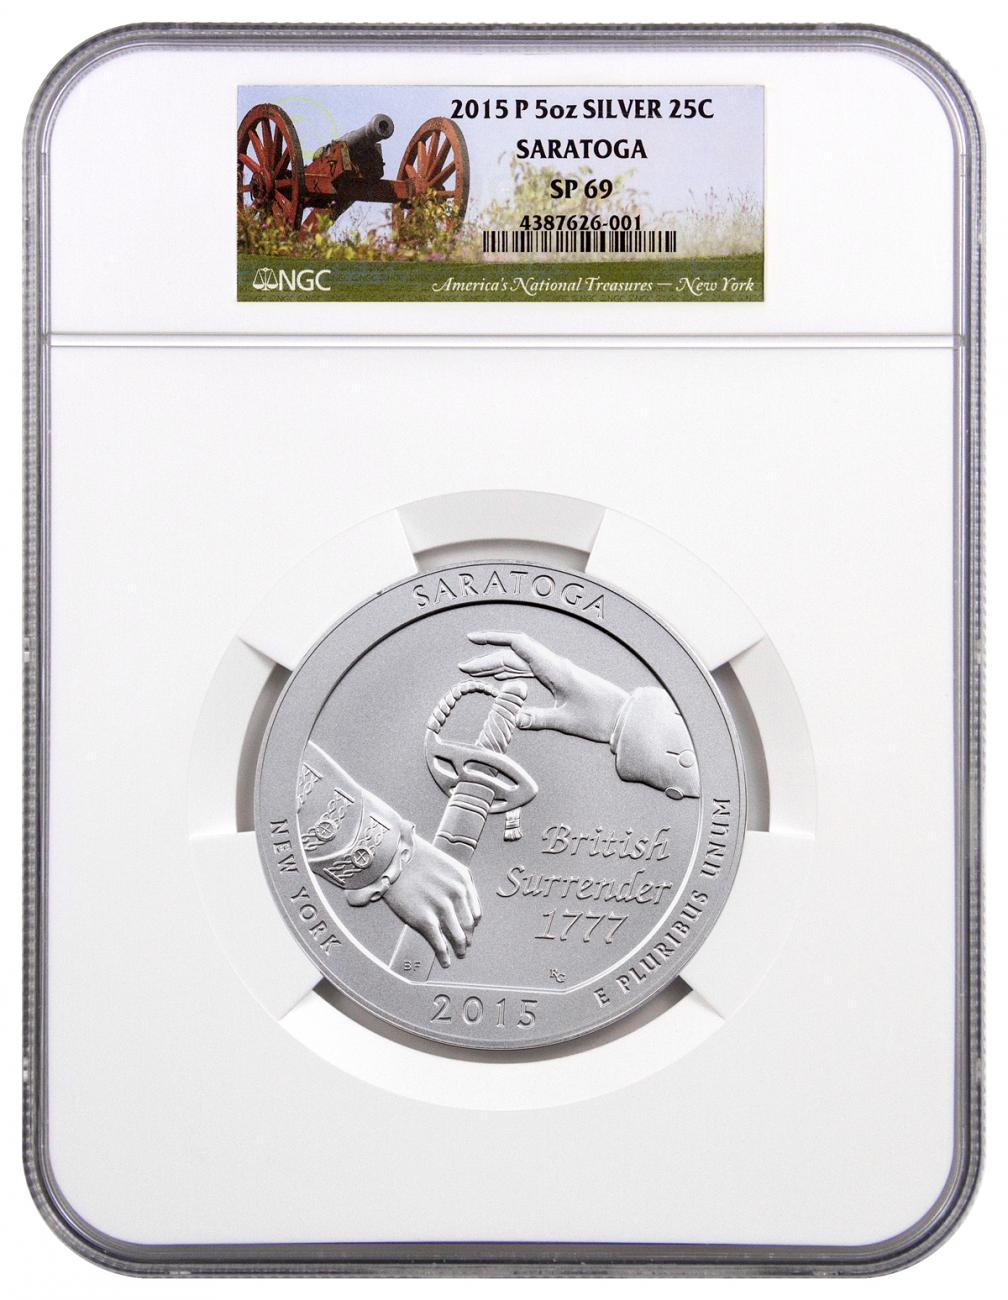 2015-P Saratoga 5 oz. Silver America the Beautiful Specimen Coin NGC SP69